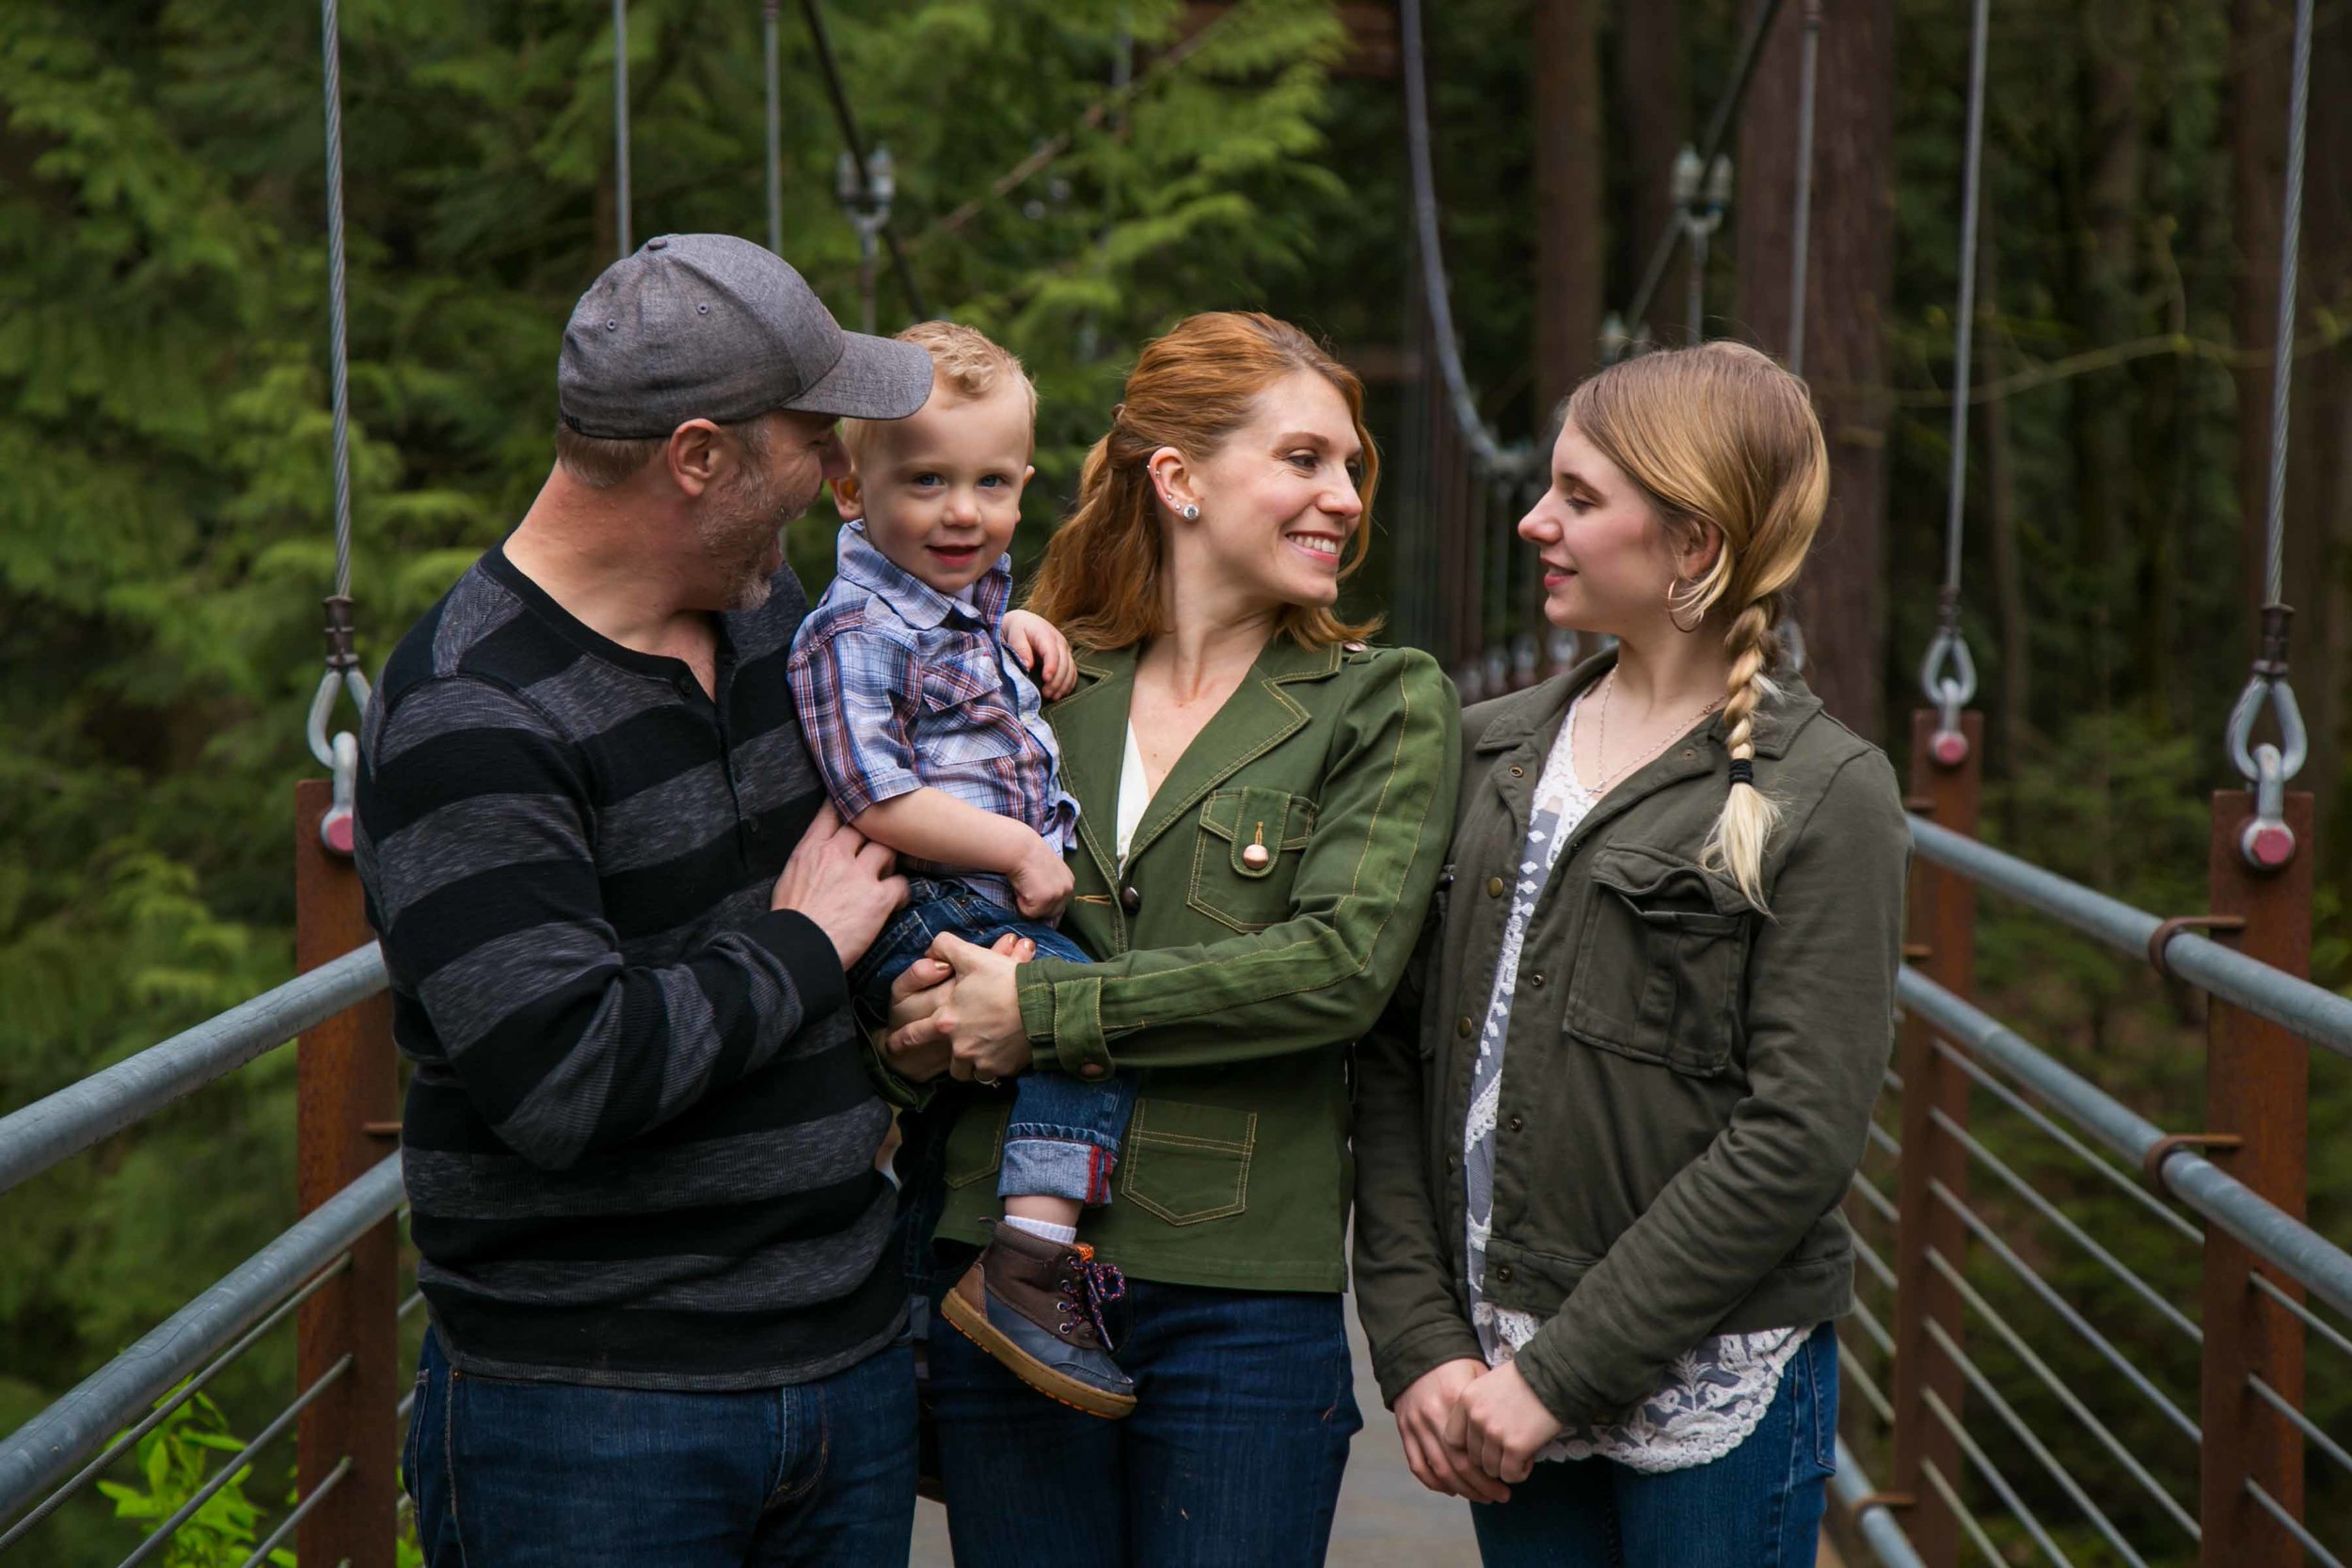 Seattle Family Photographer | G. Lin Photography | Family standing on bridge and looking at each other